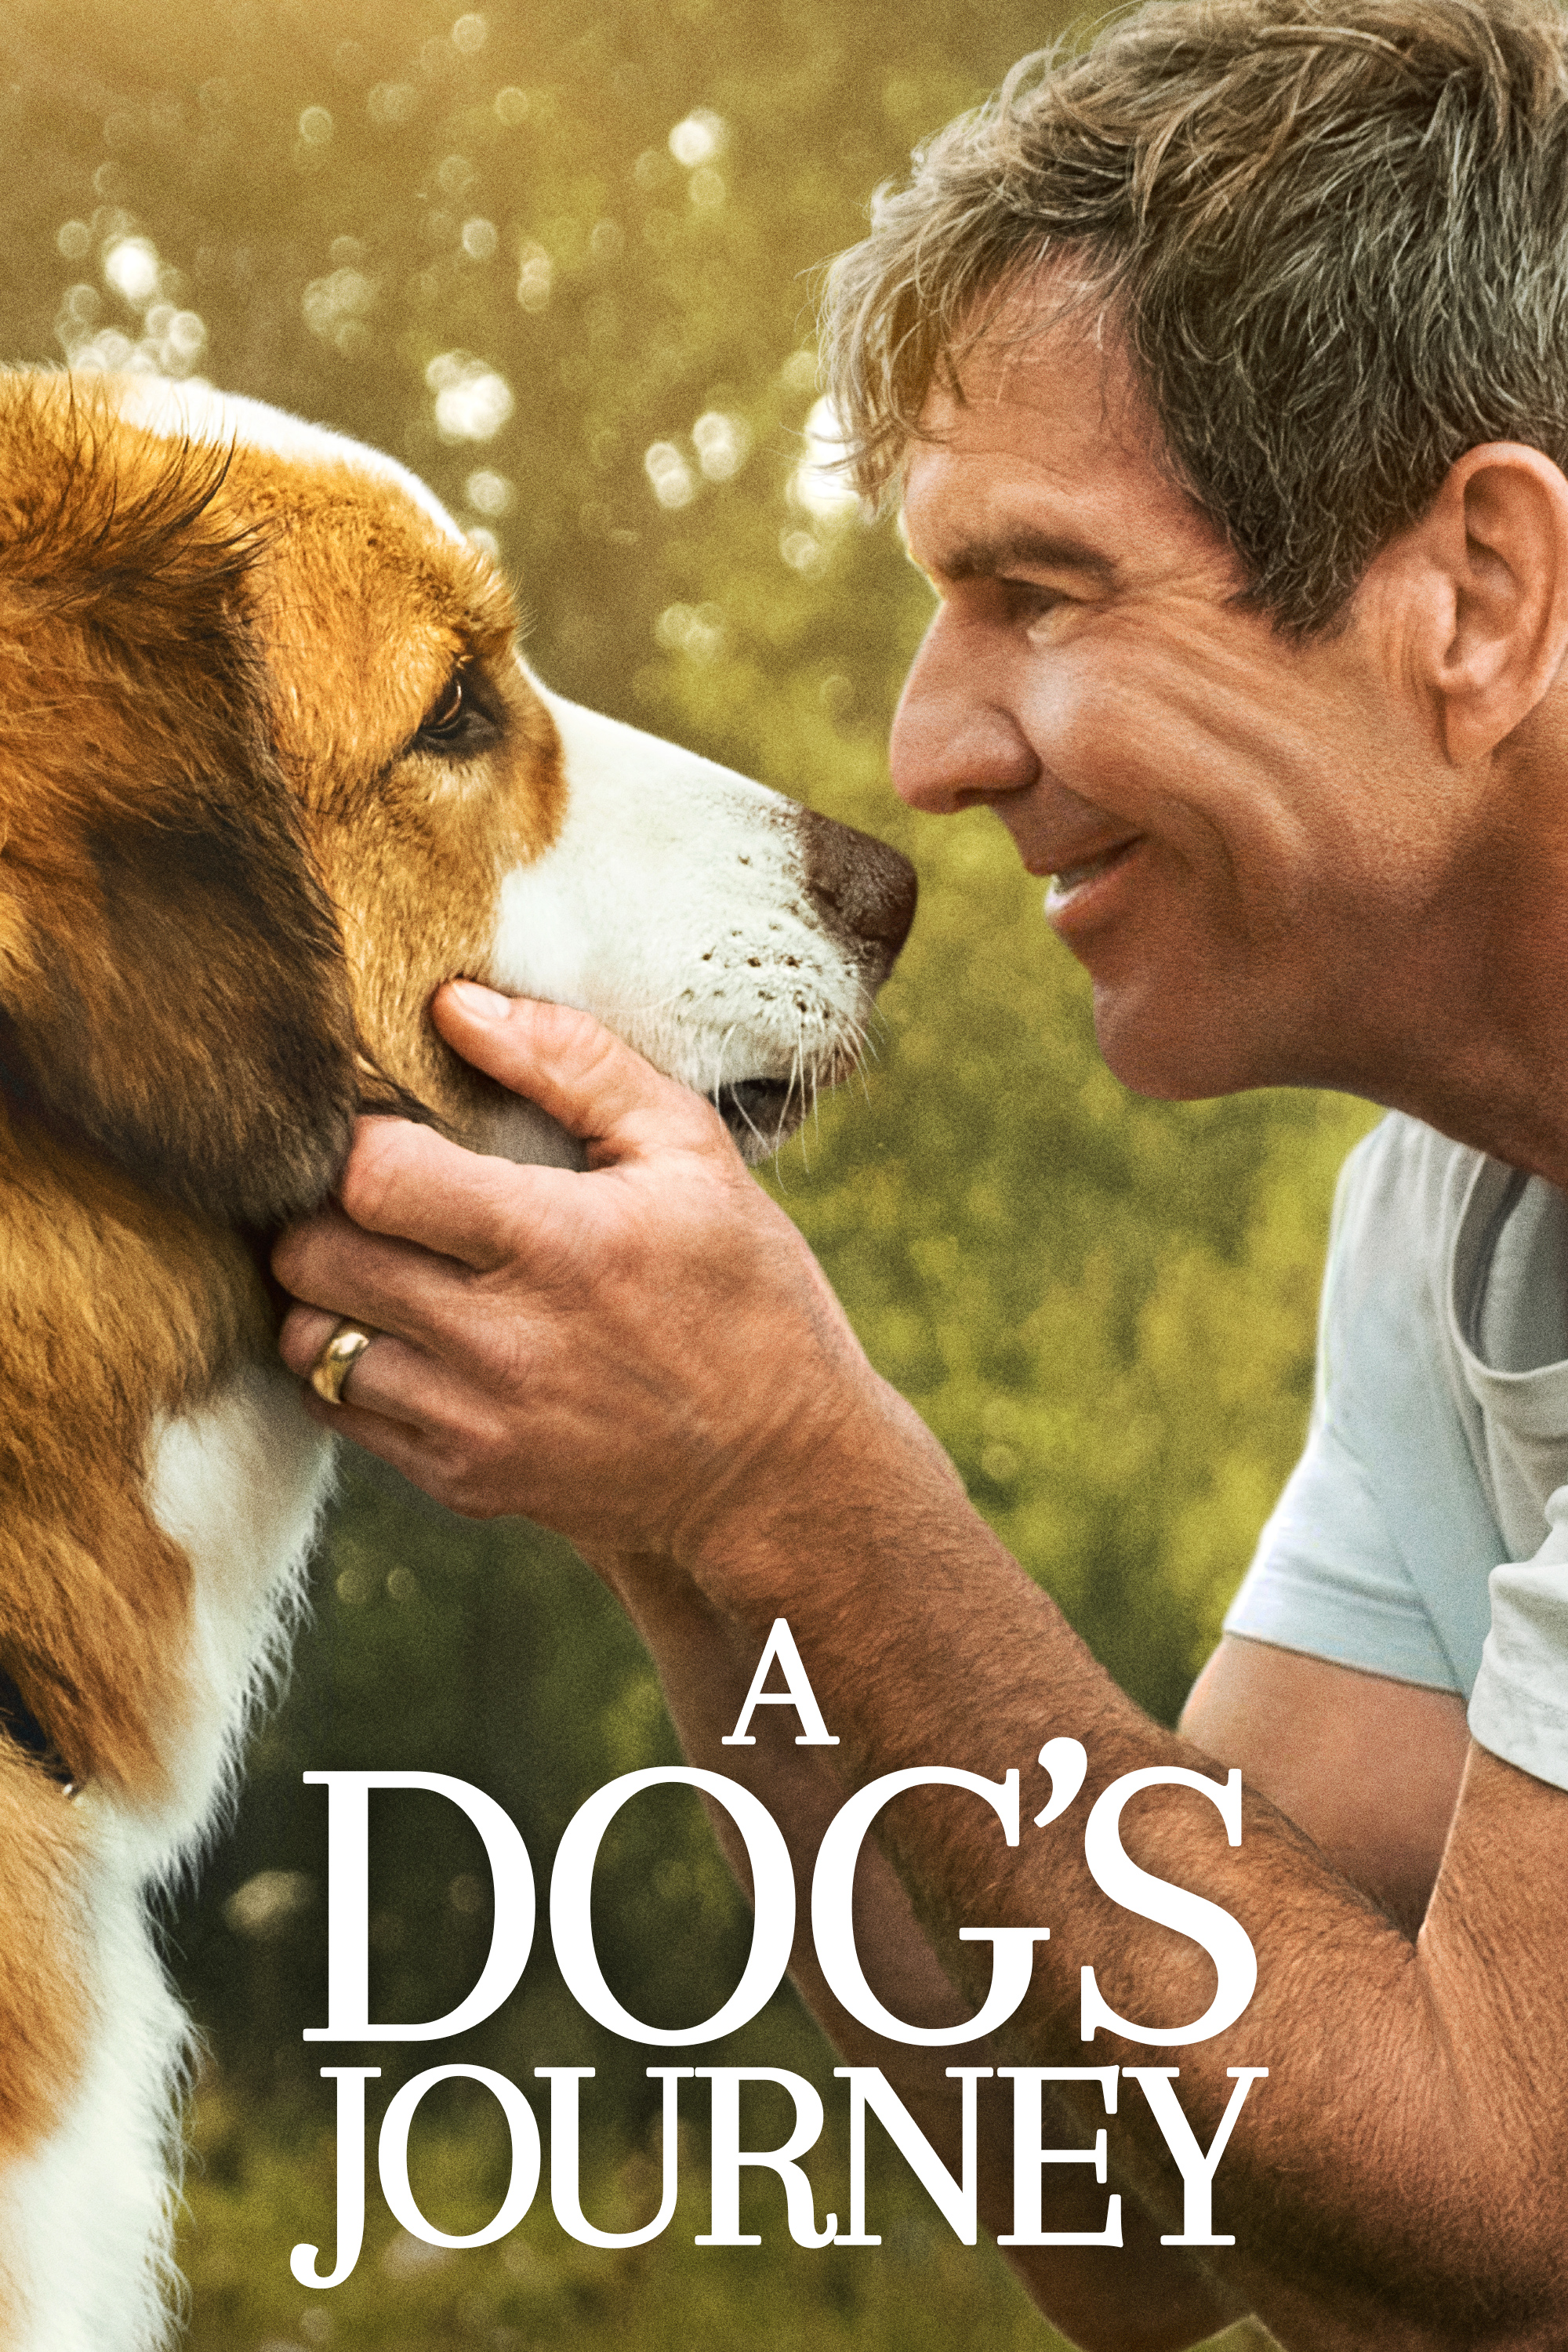 Movies @ Middletown: A Dog's Journey